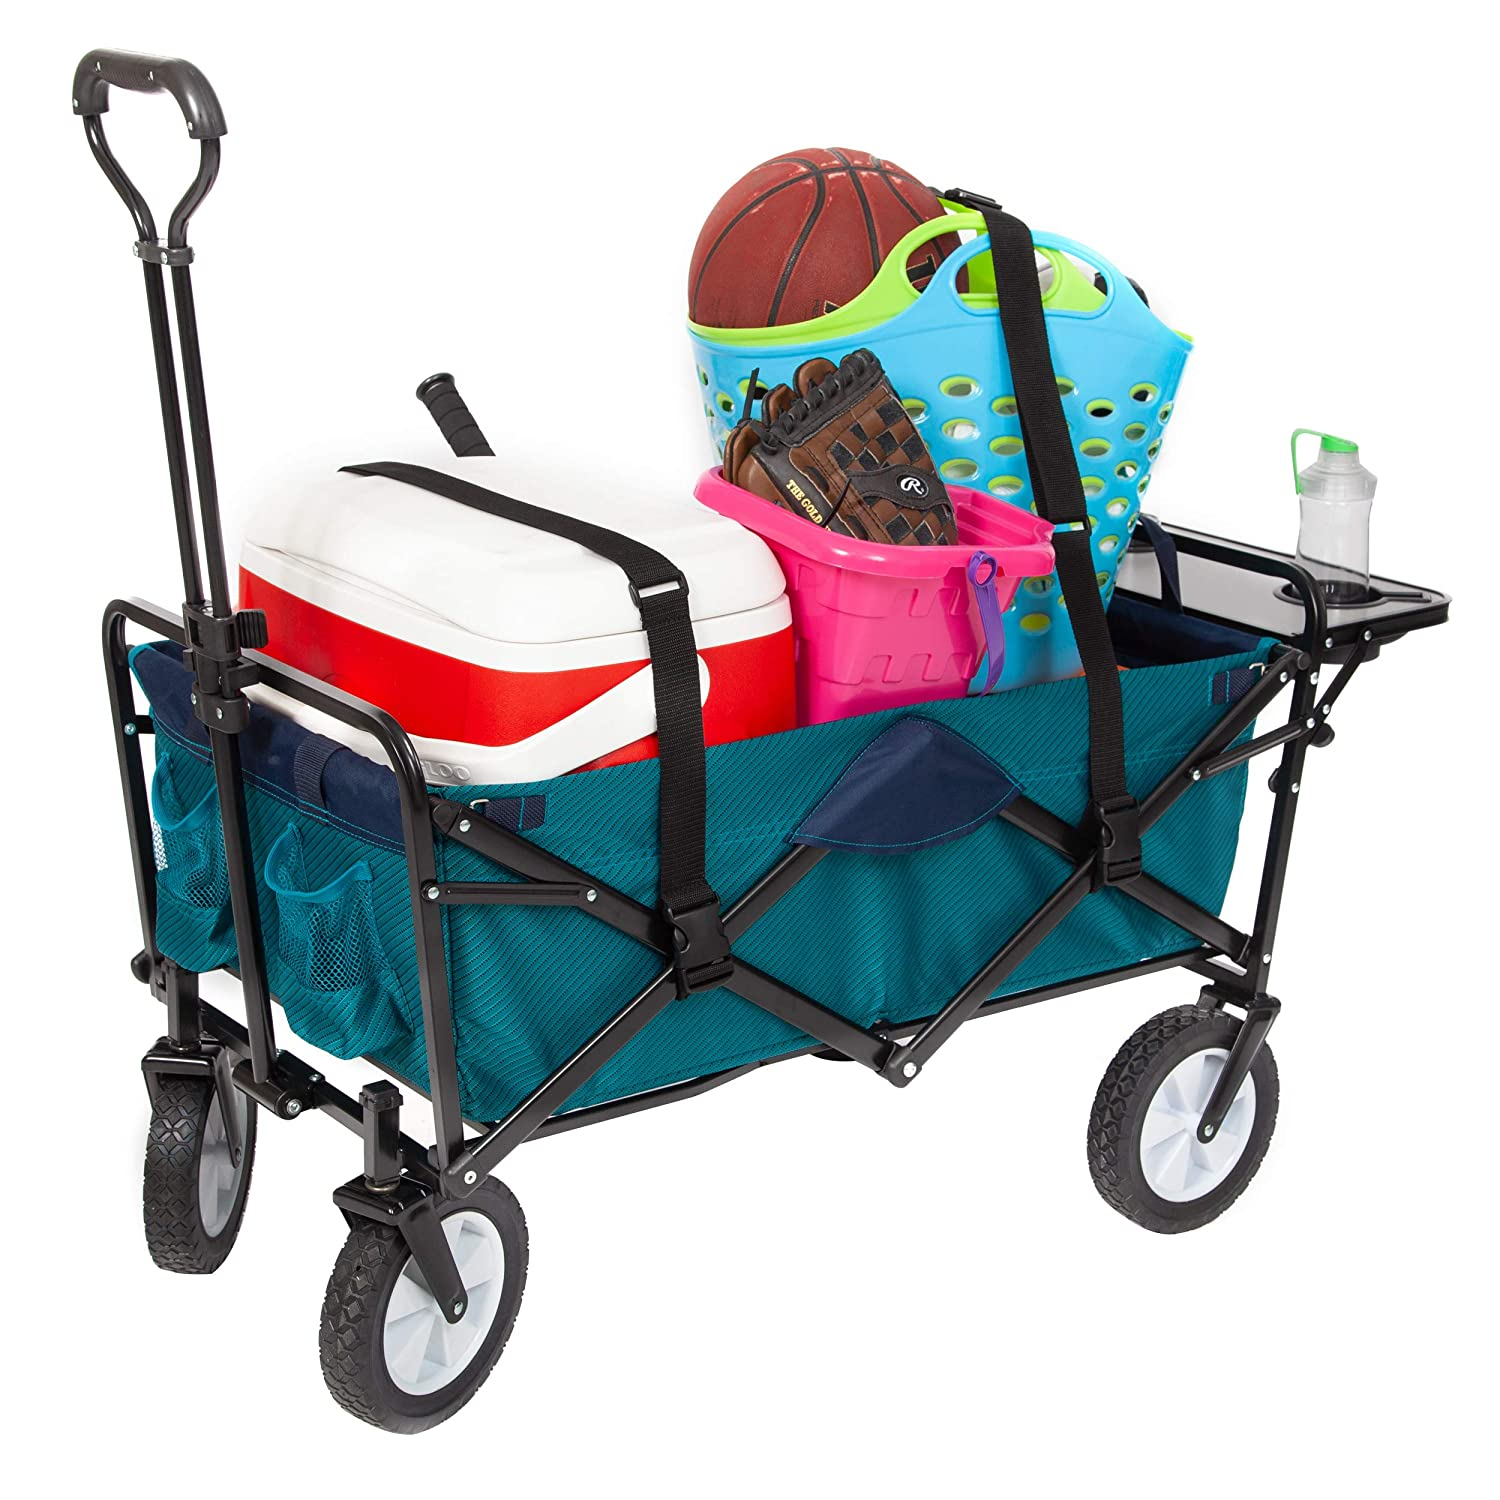 Mac Sports Foldable Heavy Duty Utility Garden Cart Wagon with Table, Bundle Straps – Teal